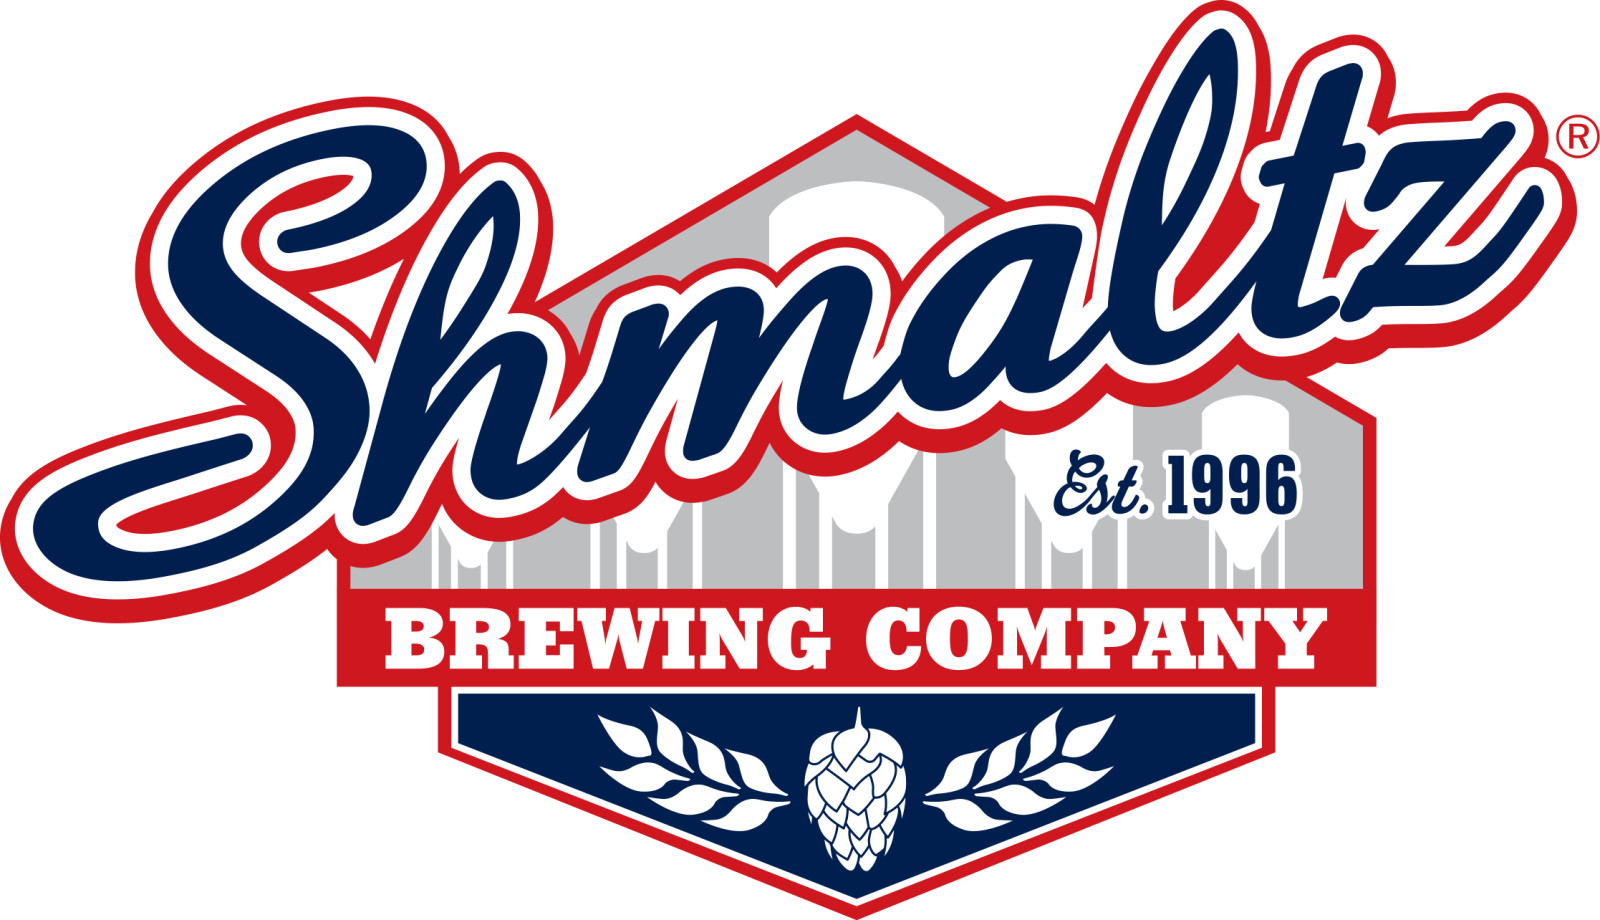 696a94ea43b4 Clifton Park, NY -- Monday, May 21, 2018 -- Shmaltz Brewing Company has  sold its Clifton Park, NY, brewery assets to Rich Buceta, Owner of  Queens-based ...